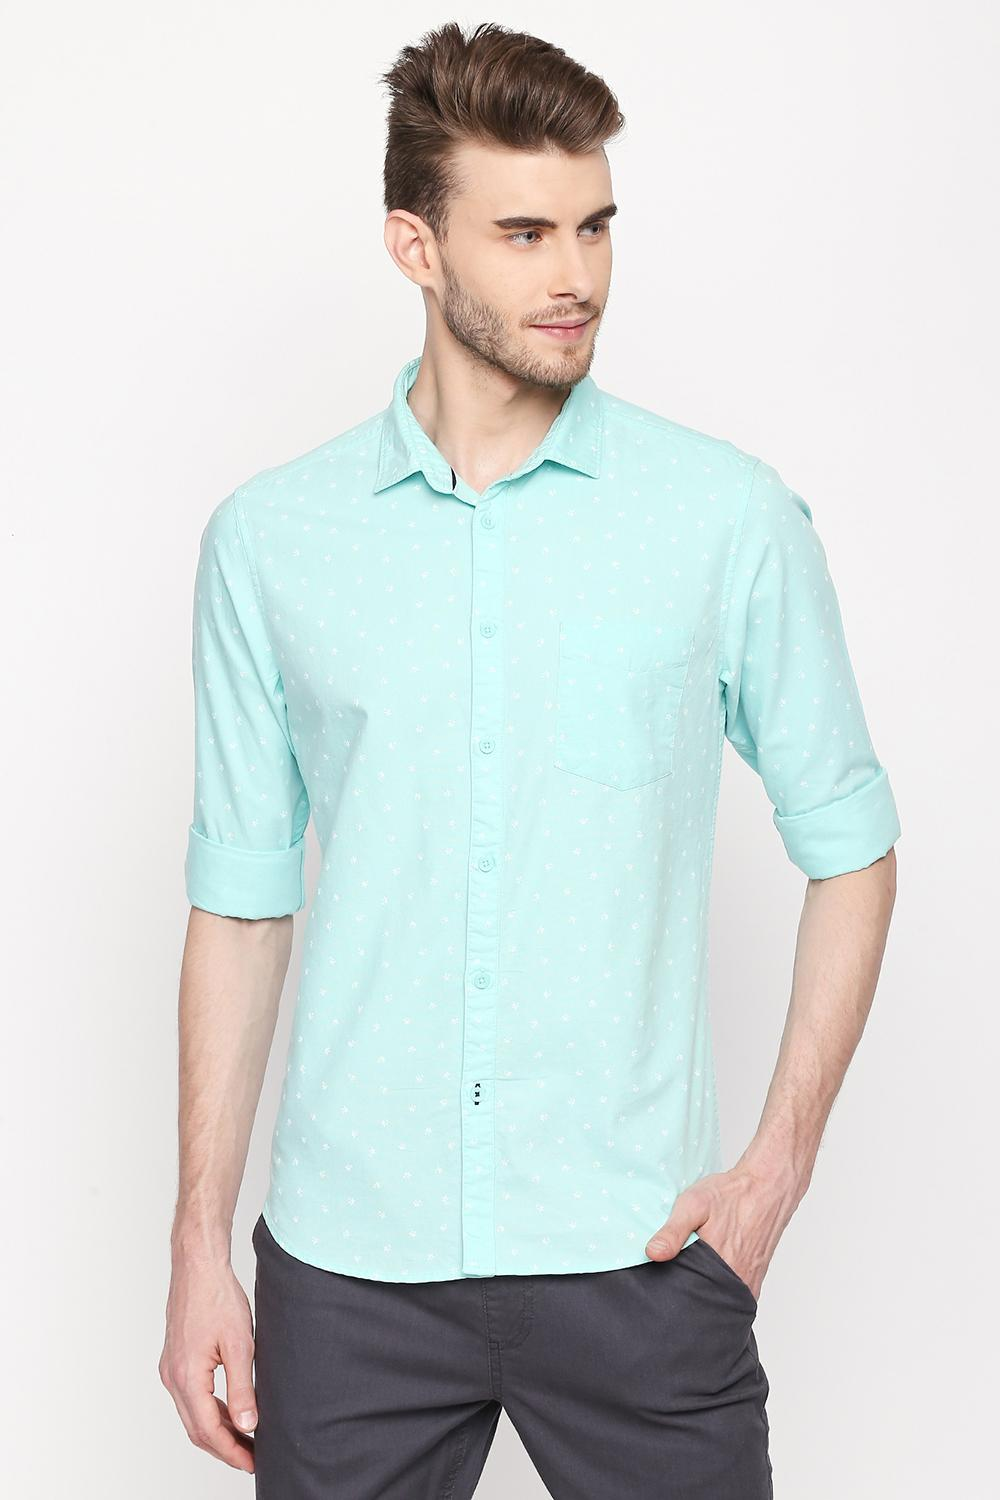 4c6eb1f4c2e Buy Mens Casual and Formal Shirts Online with Affordable Price in ...